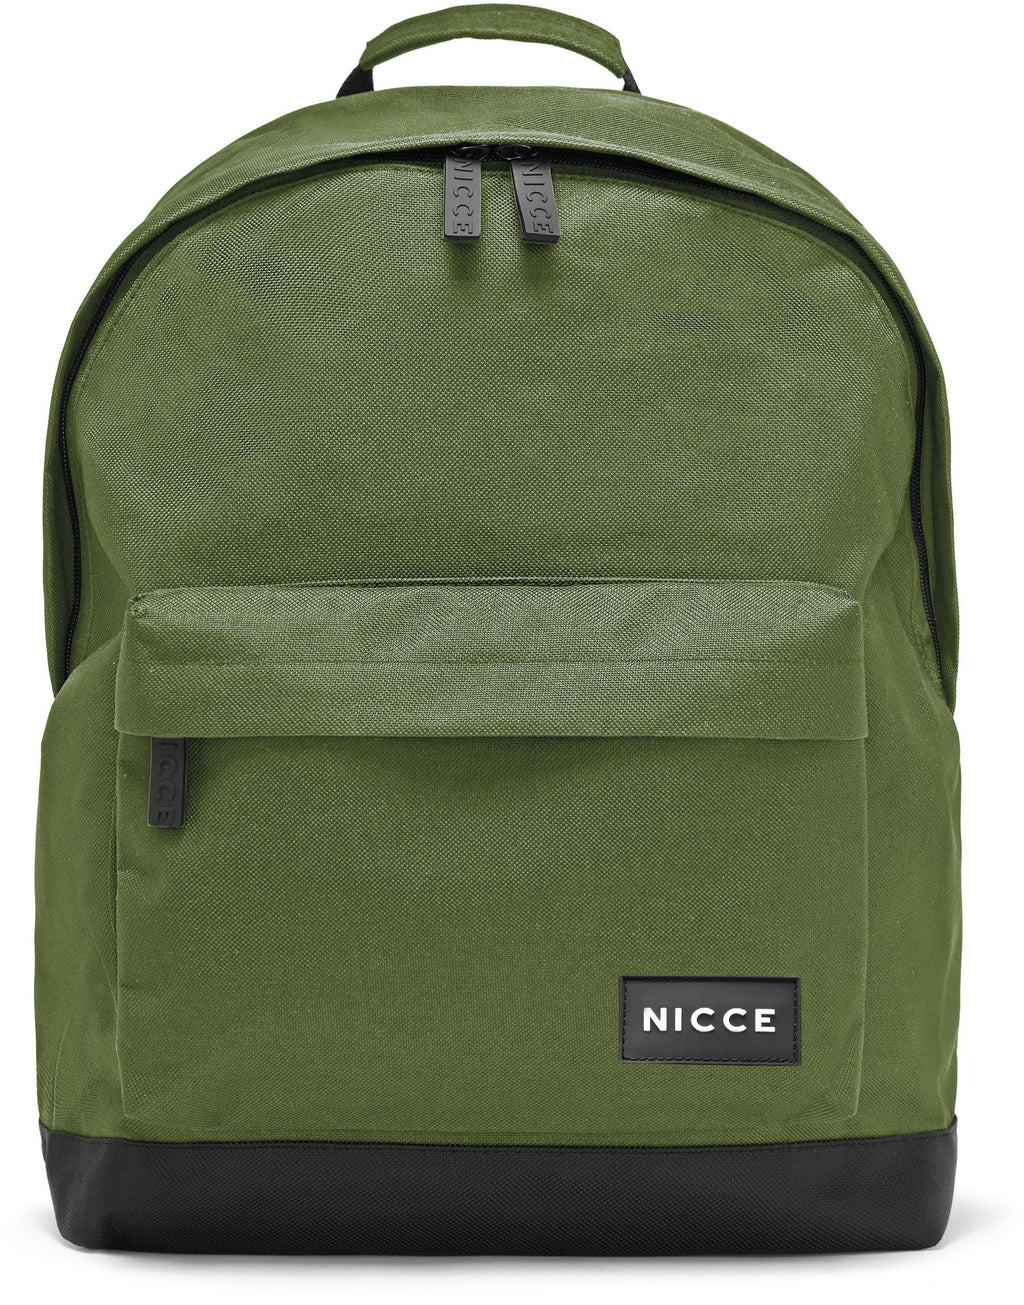 NICCE Core Backpack Bag Khaki